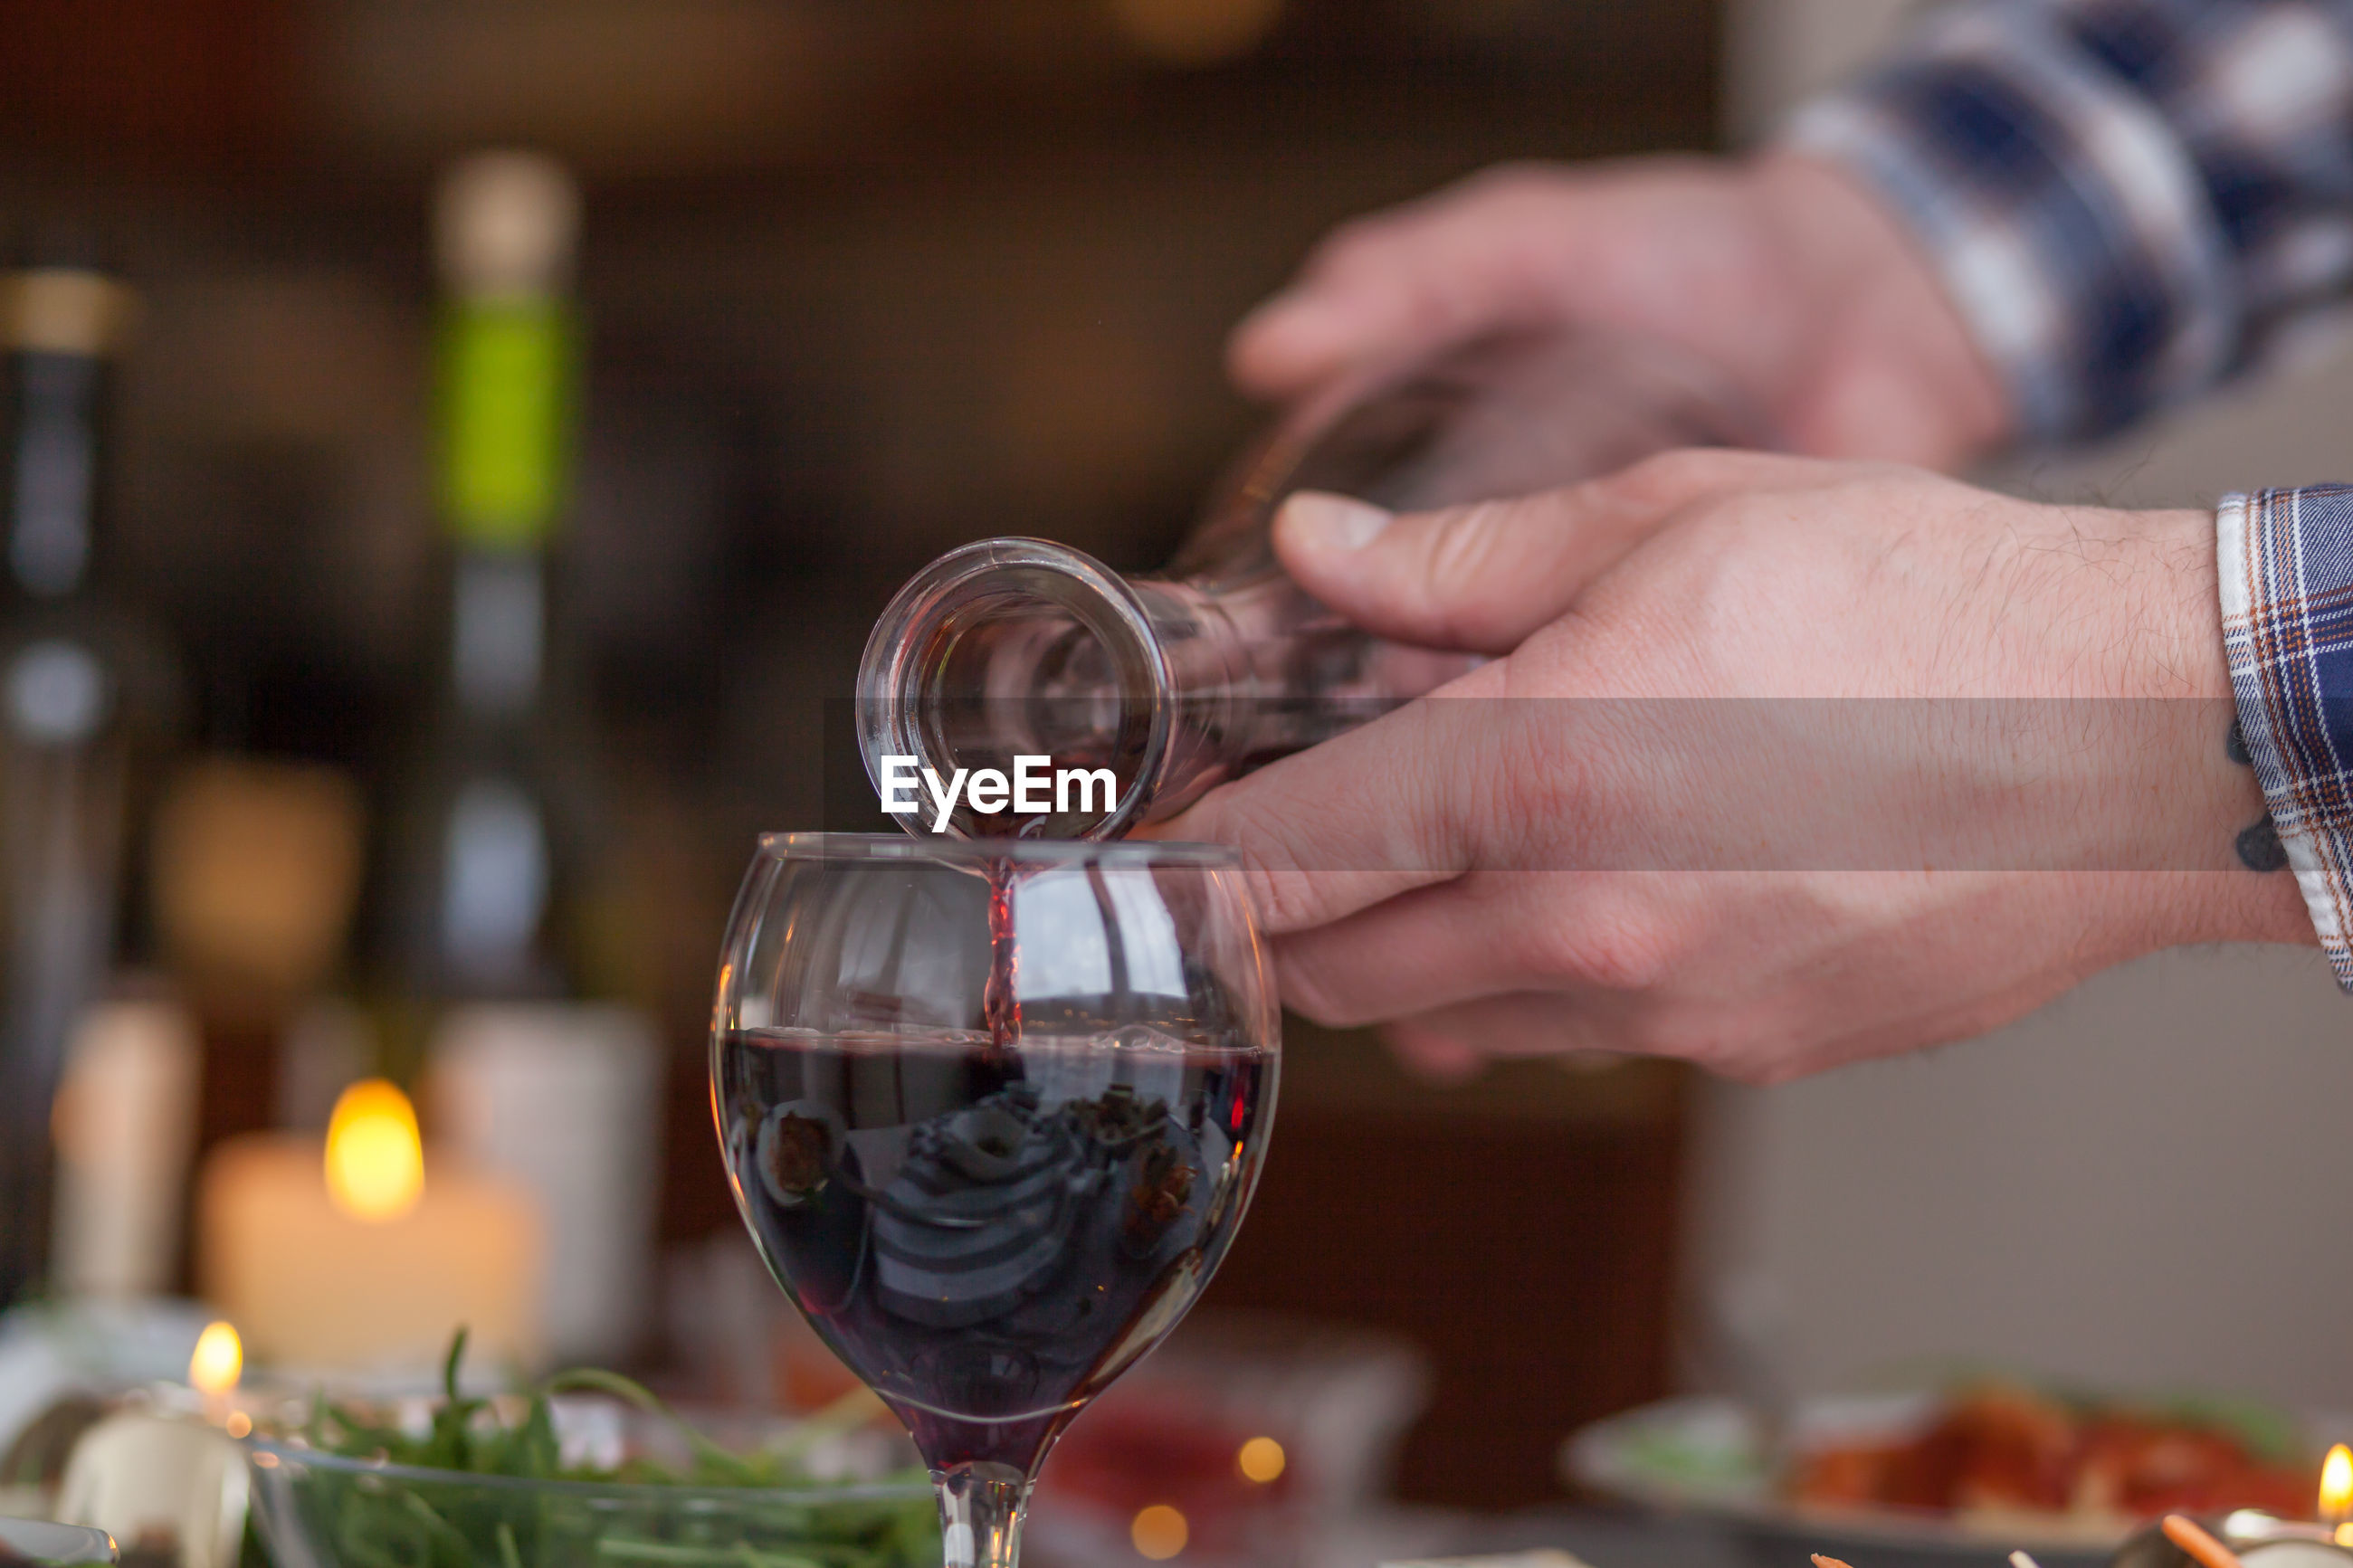 Close up of unrecognizable person pouring wine from a decanter.